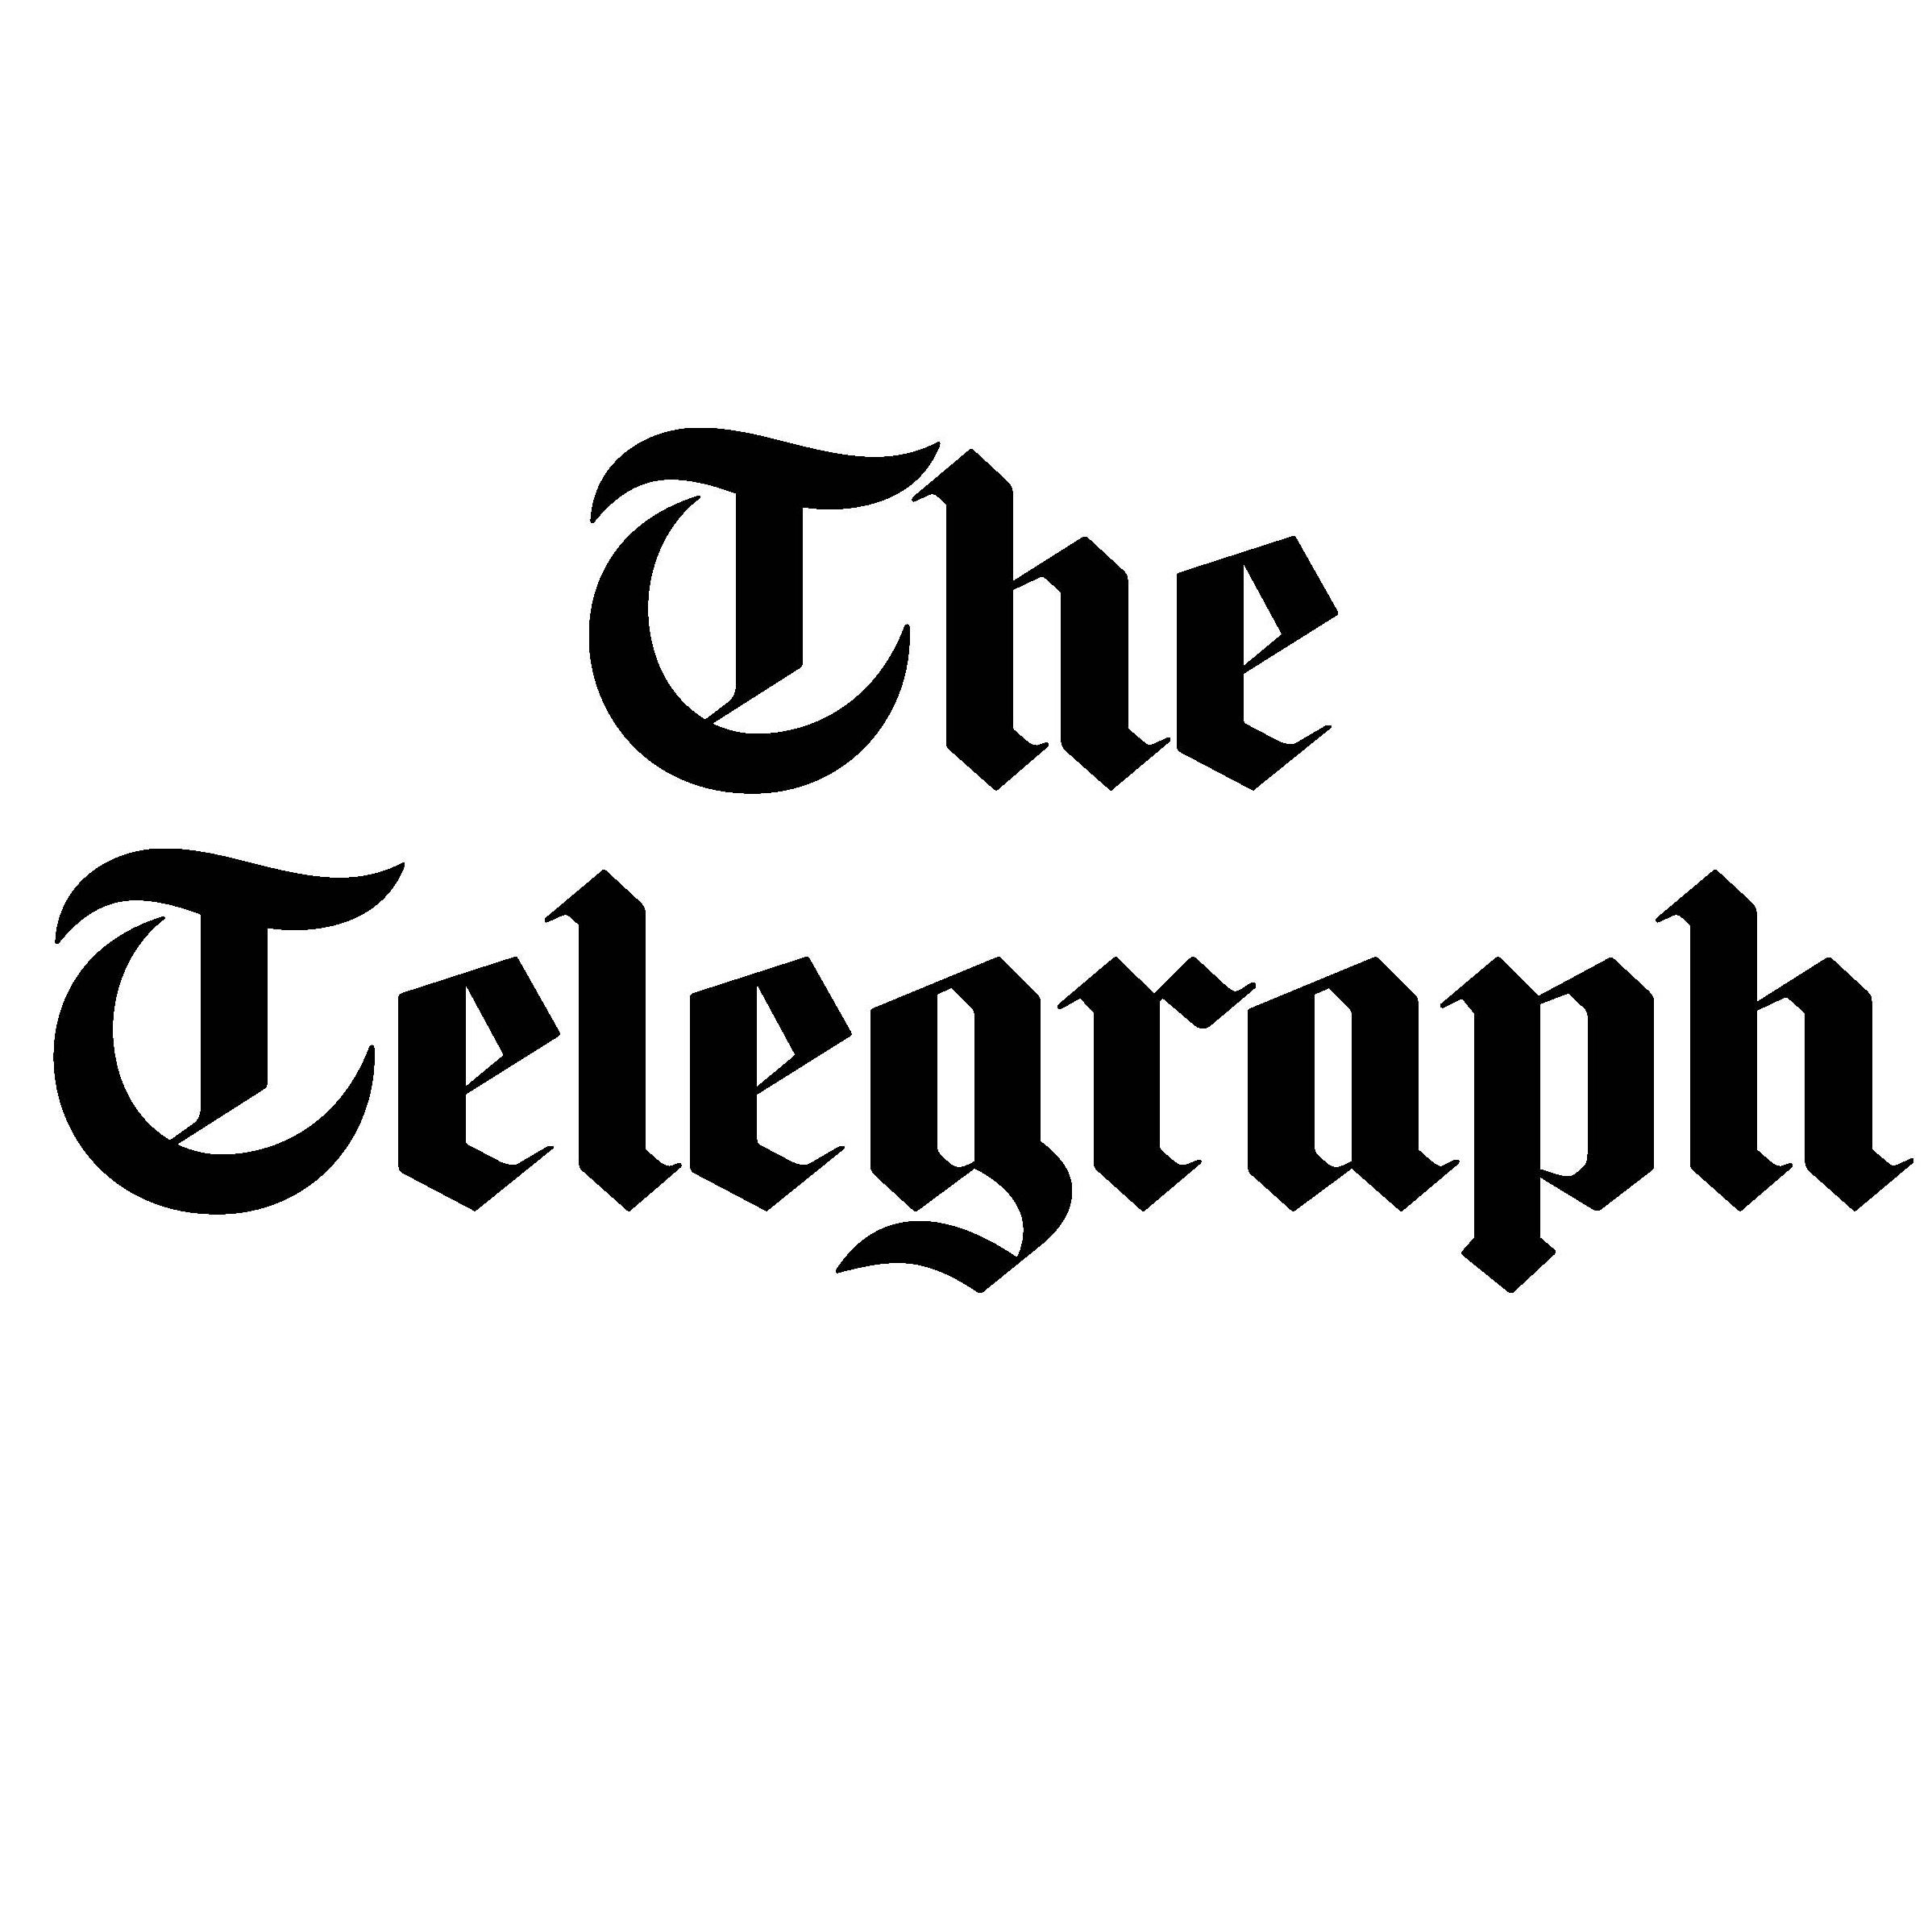 6 Dec 2014: Modern Slavery Bill<br>Coalition letter to the editor, The Telegraph